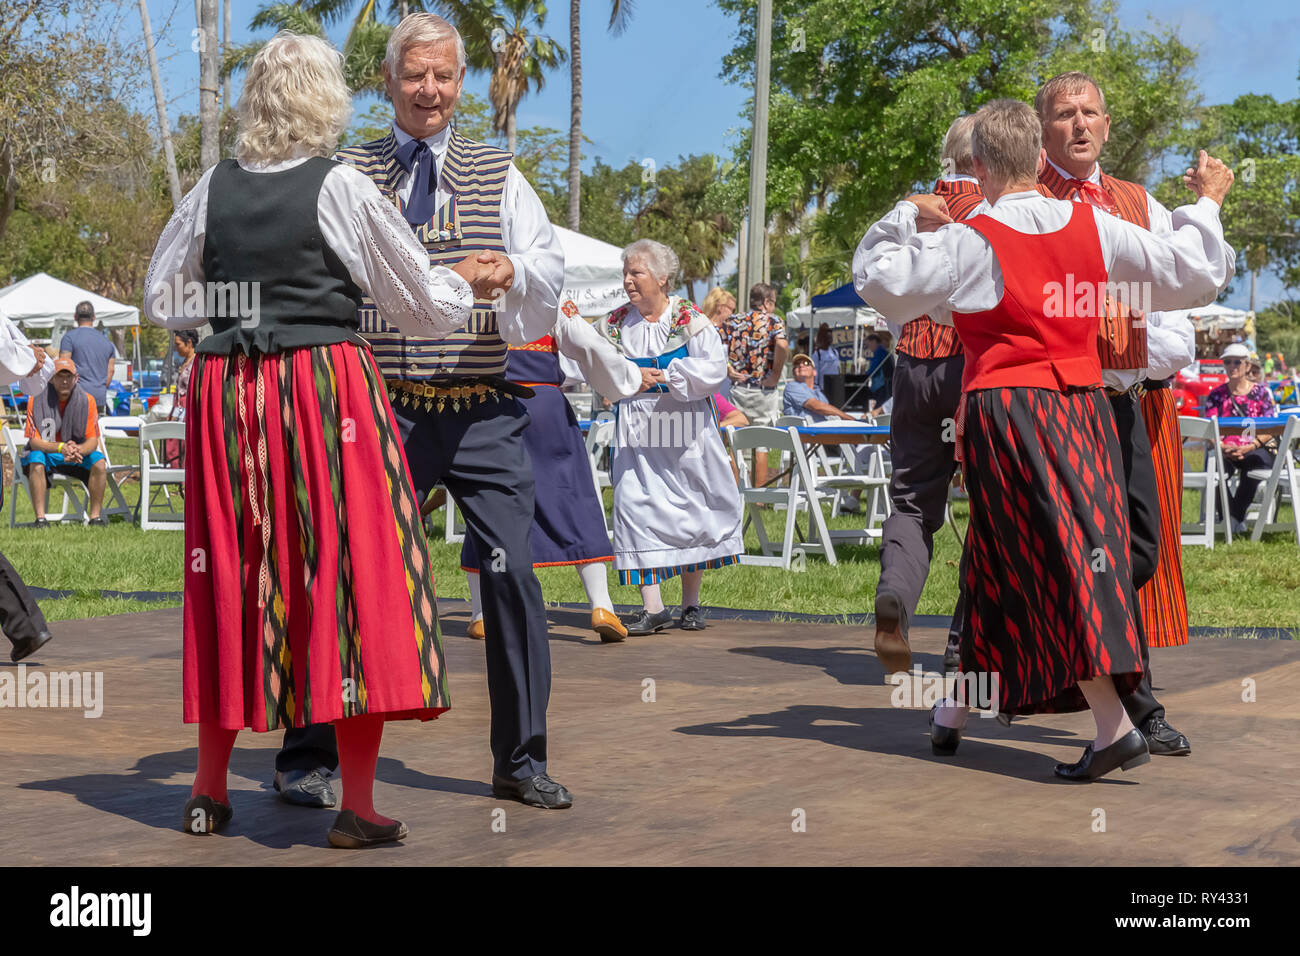 Lake Worth, Florida, USA March 3, 2019,​ Midnight Sun Festival Celebrating Finnish Culture. The men and women dance together on the outdoor dance floor. - Stock Image